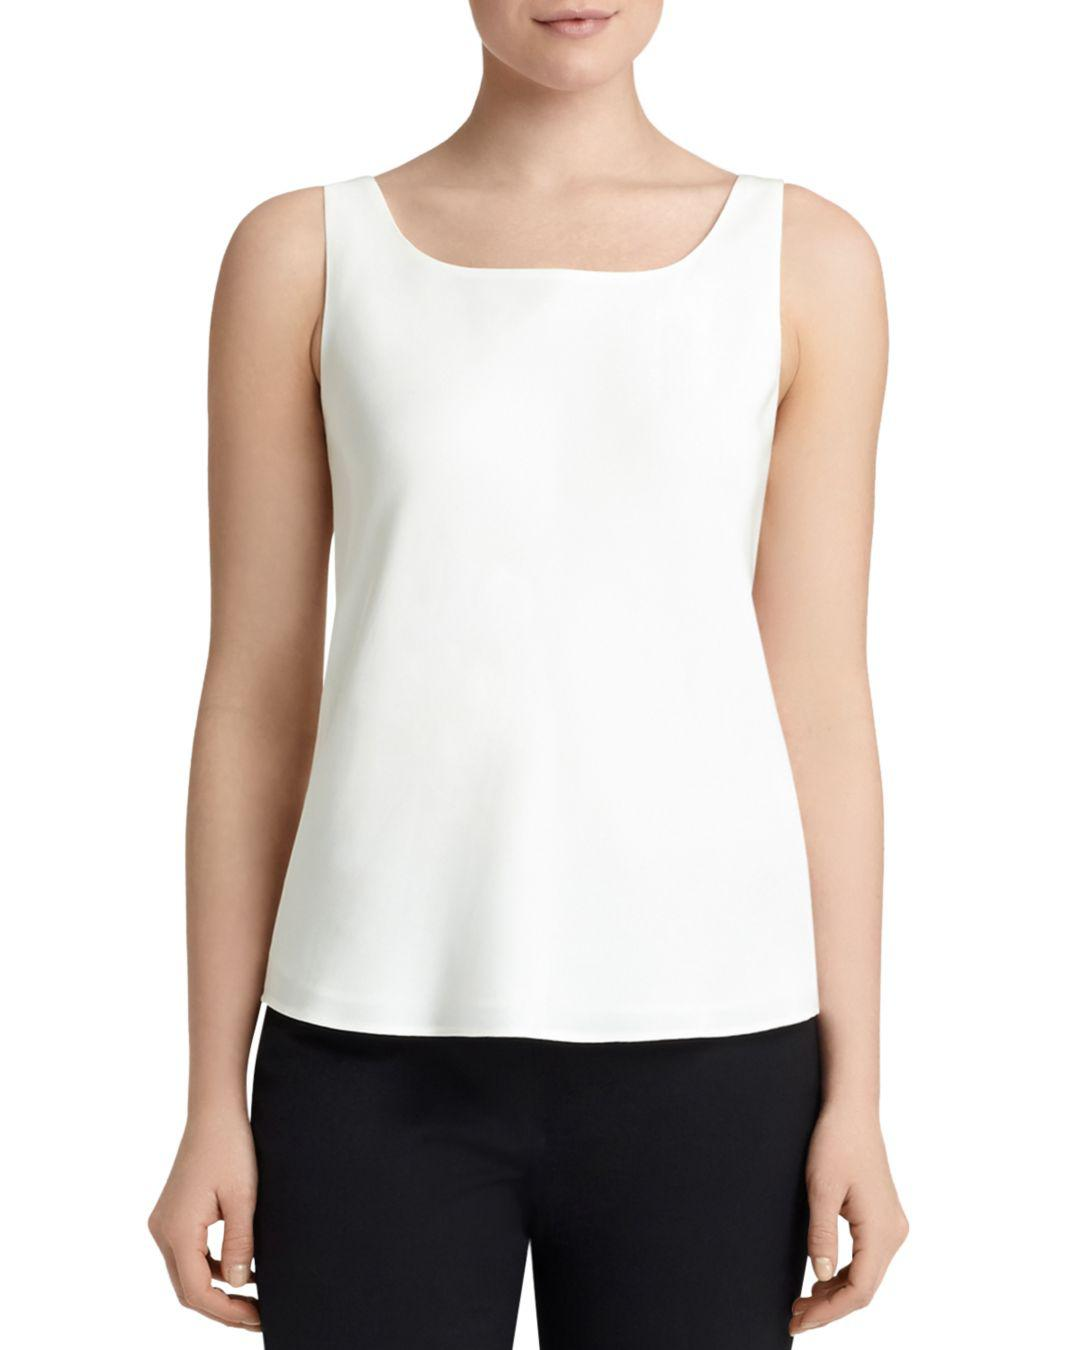 cc77226d1af0d5 Lyst - Lafayette 148 New York Silk Tank in White - Save 16%